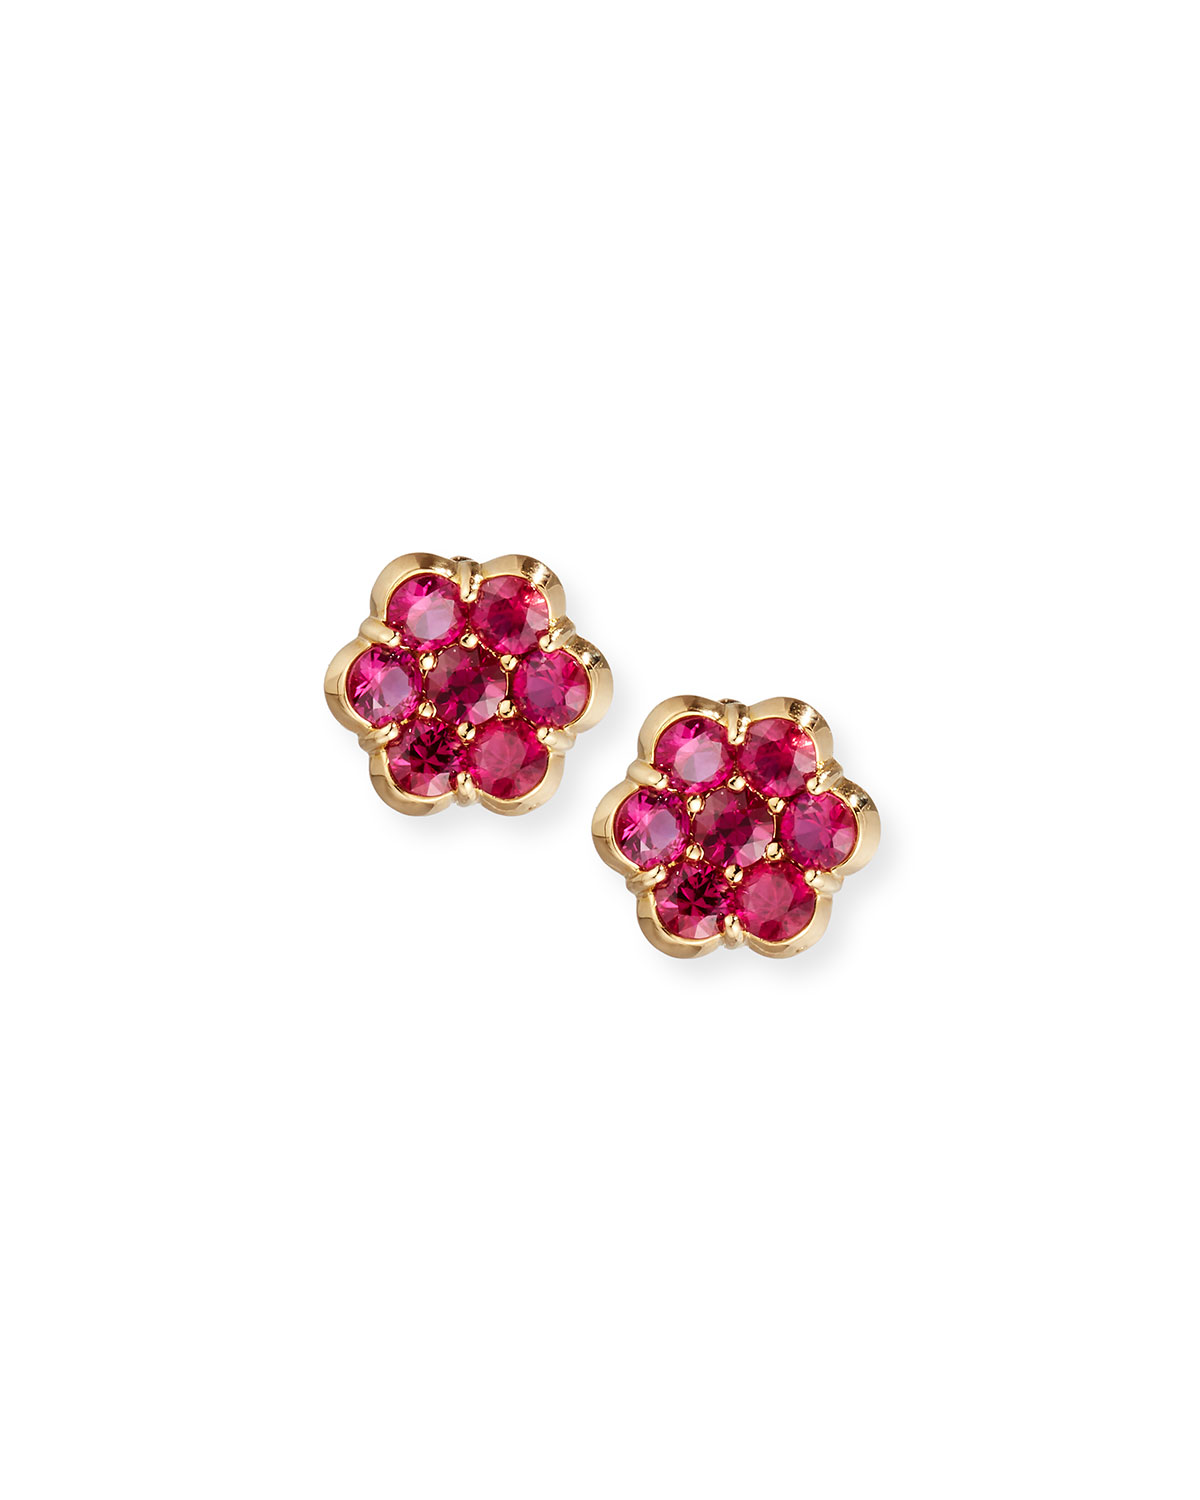 BAYCO 18K Gold & Ruby Floral Stud Earrings